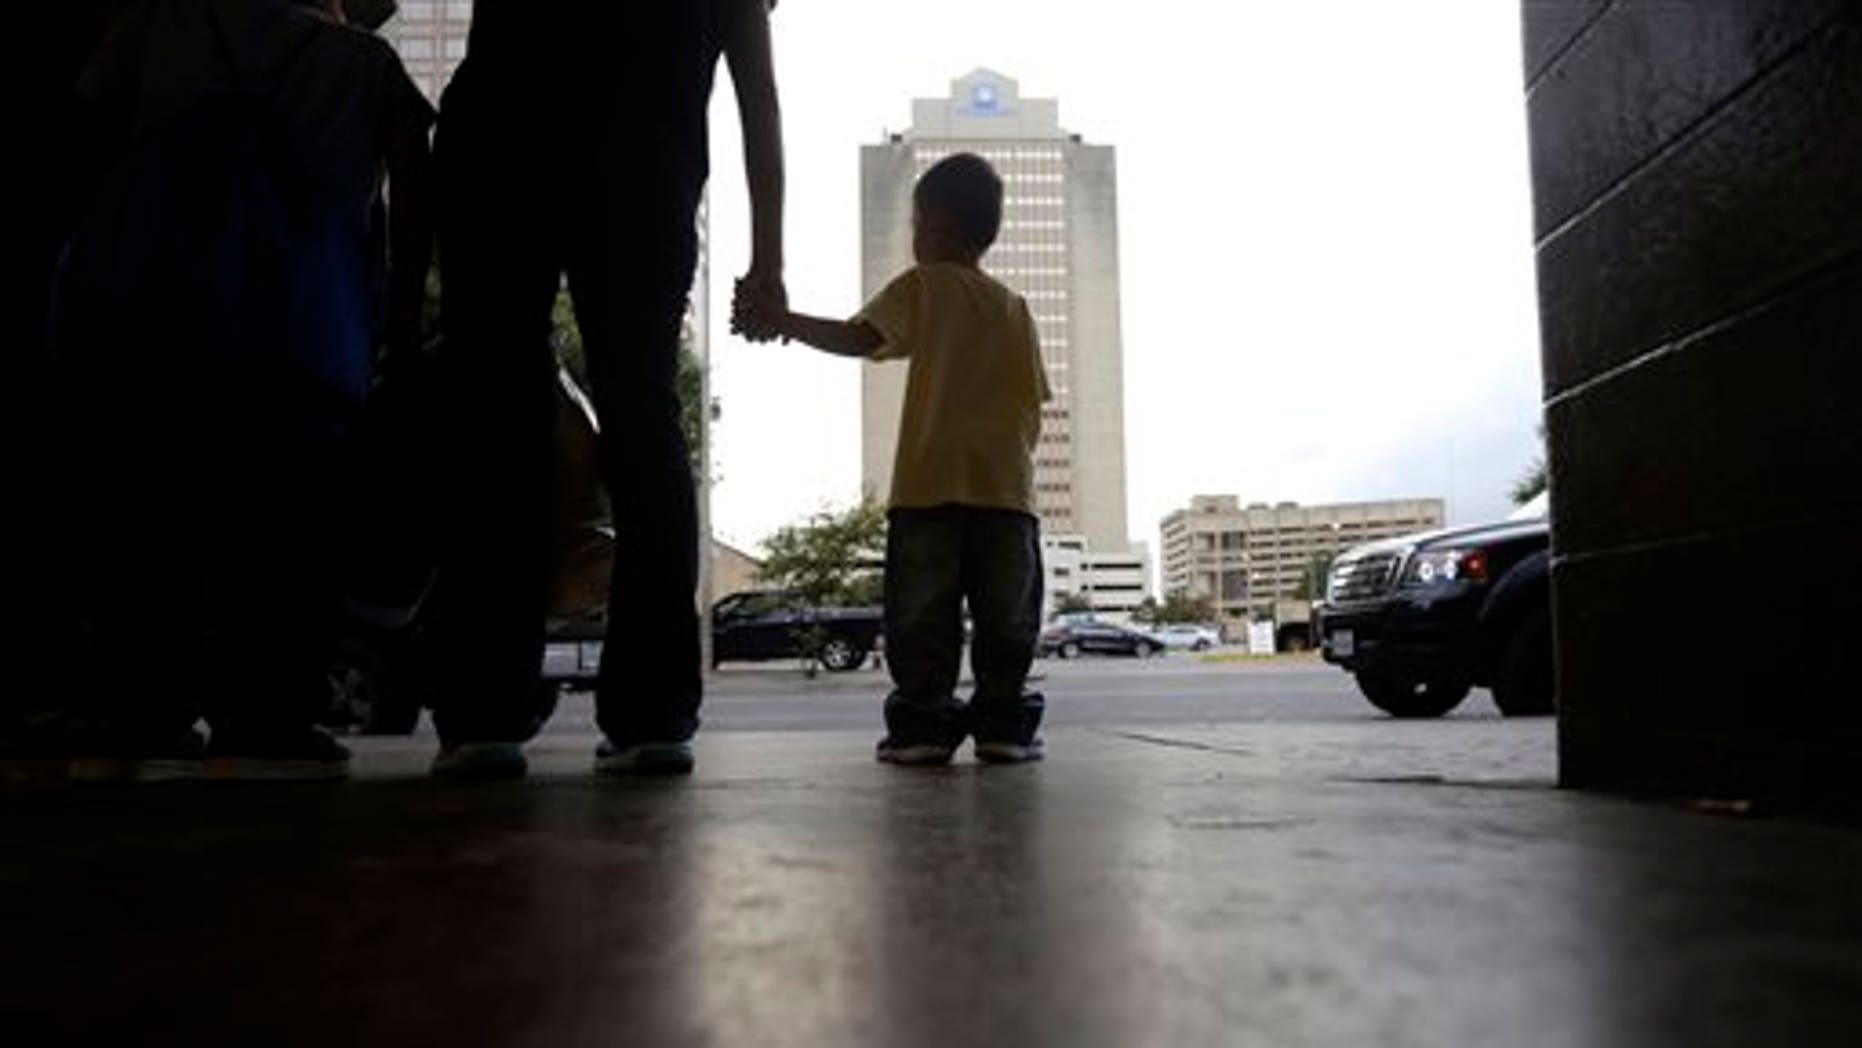 Tuesday, July 7, 2015, A young boy holds hands with his mother at a bus station after they were released from a family detention center in San Antonio, Texas.